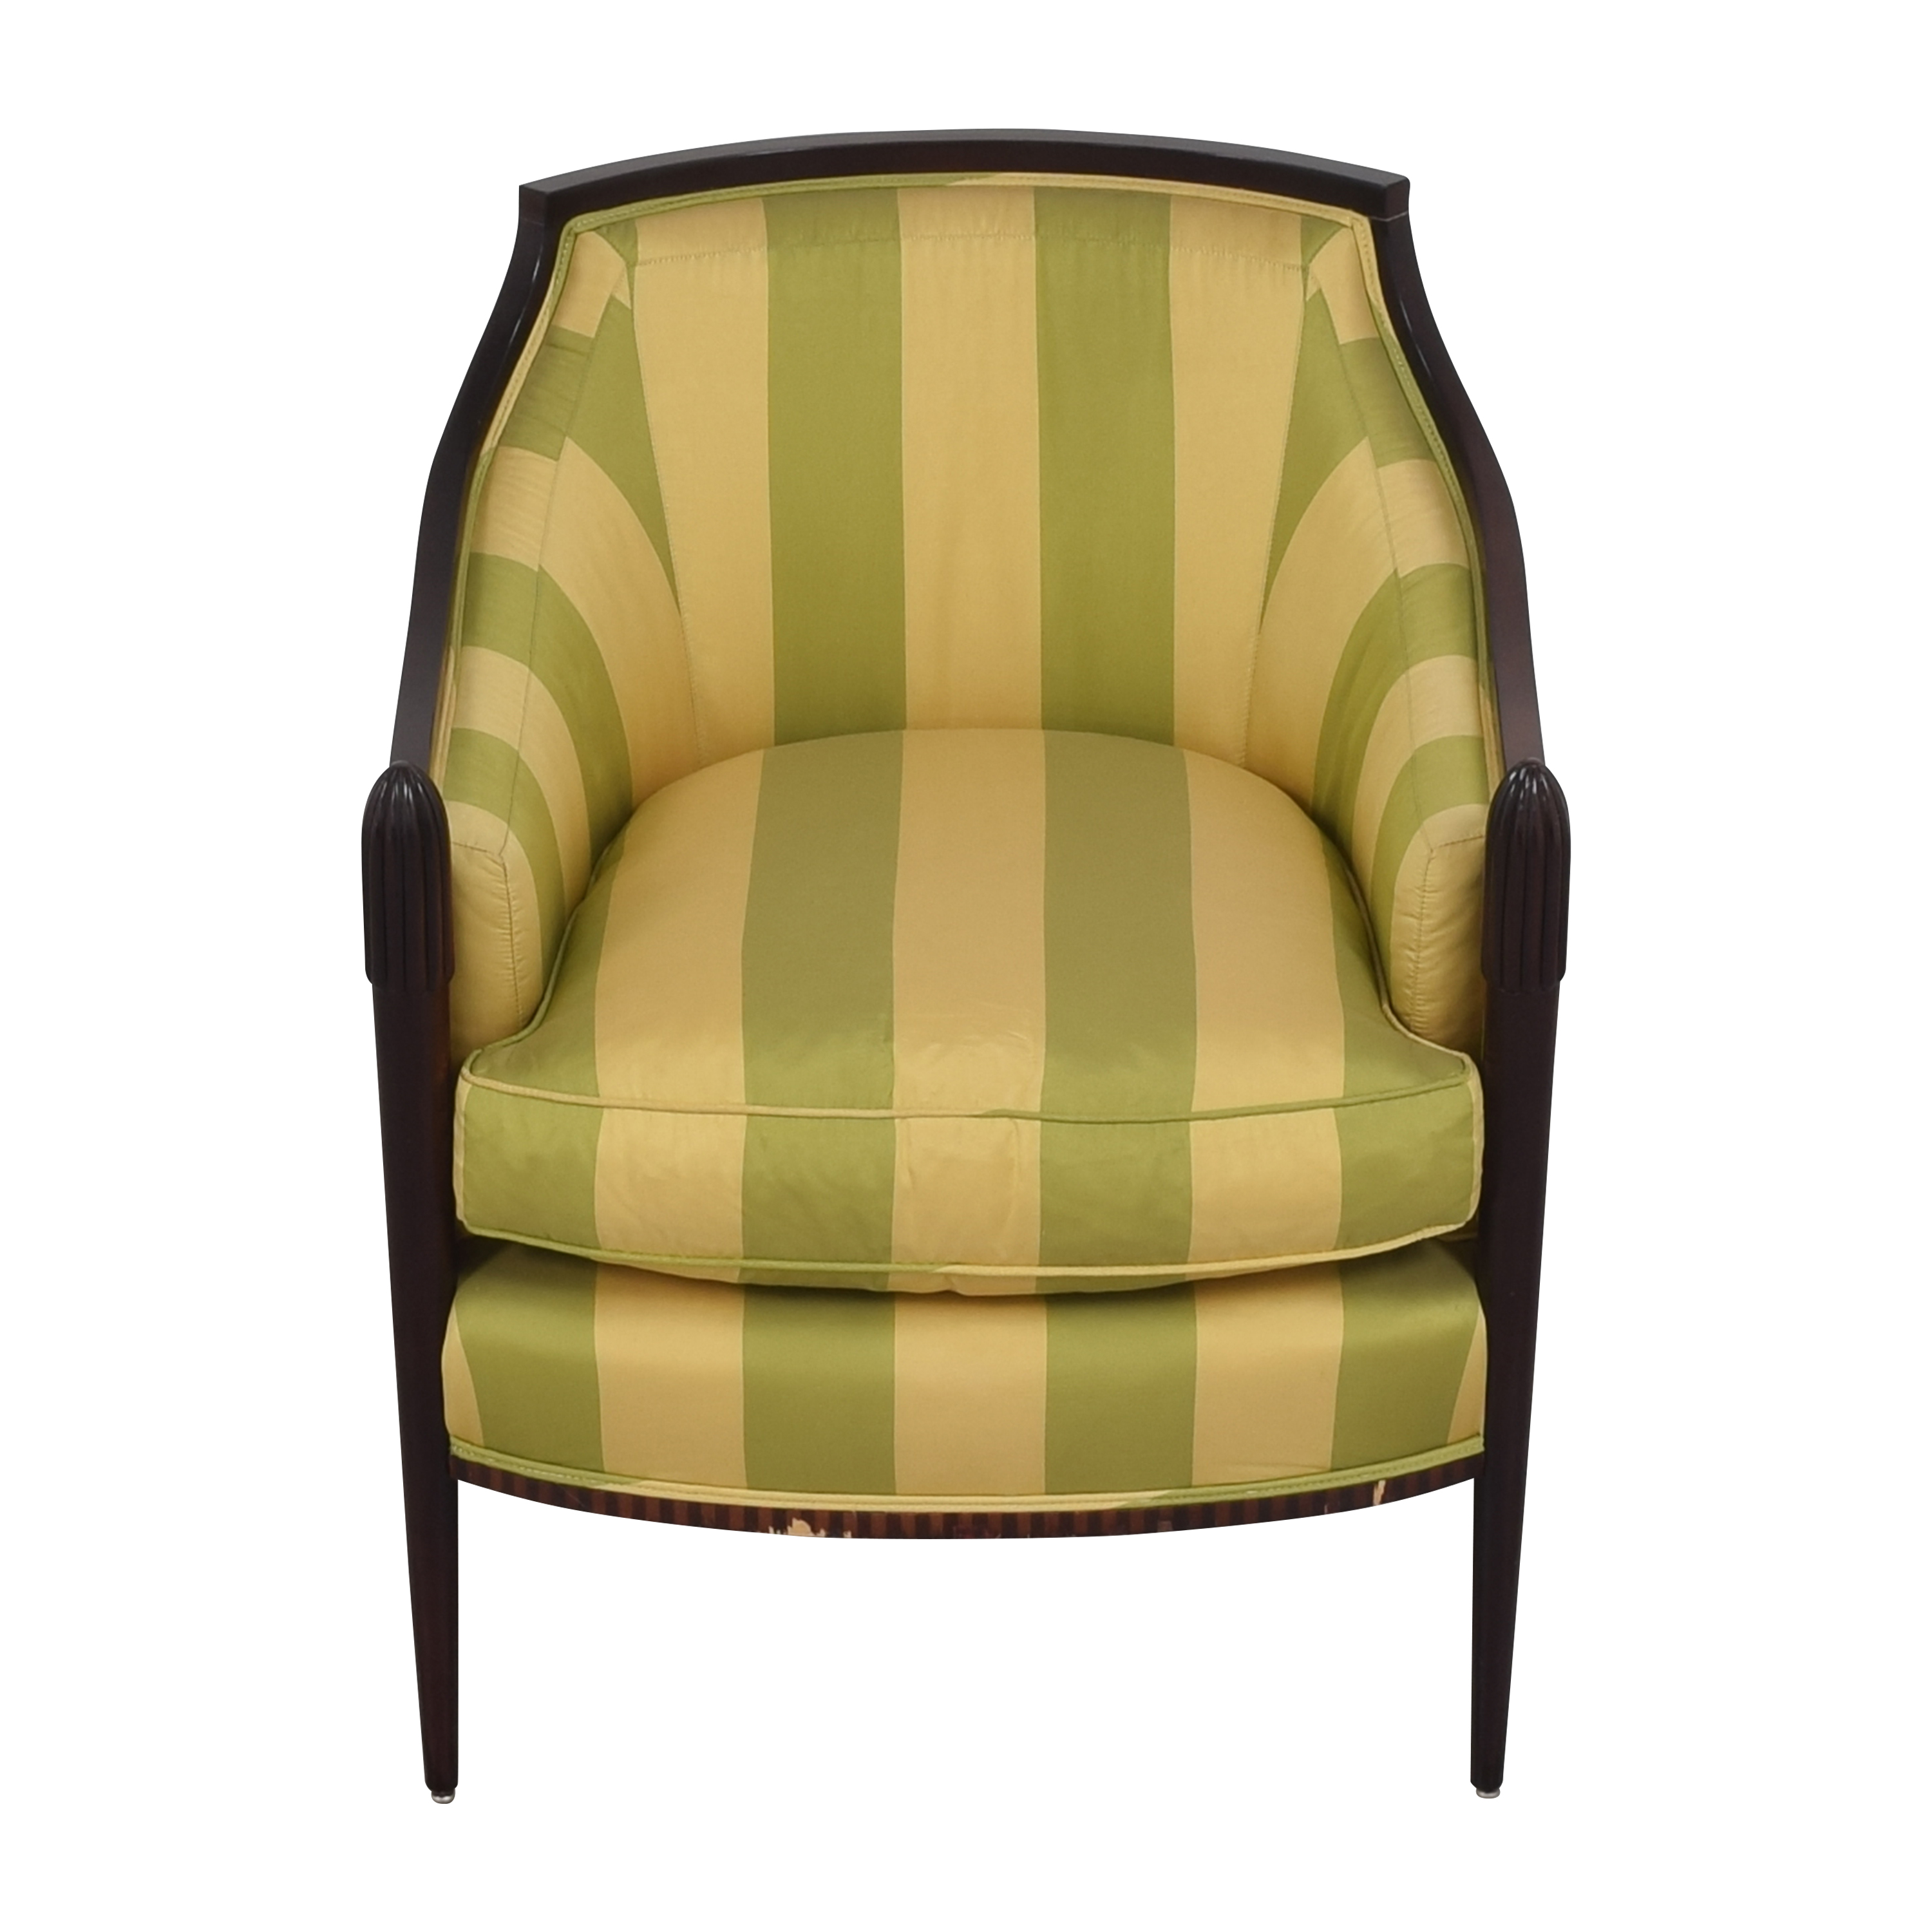 Baker Furniture Barbara Barry for Baker Furniture Deco Classic Lounge Chair pa